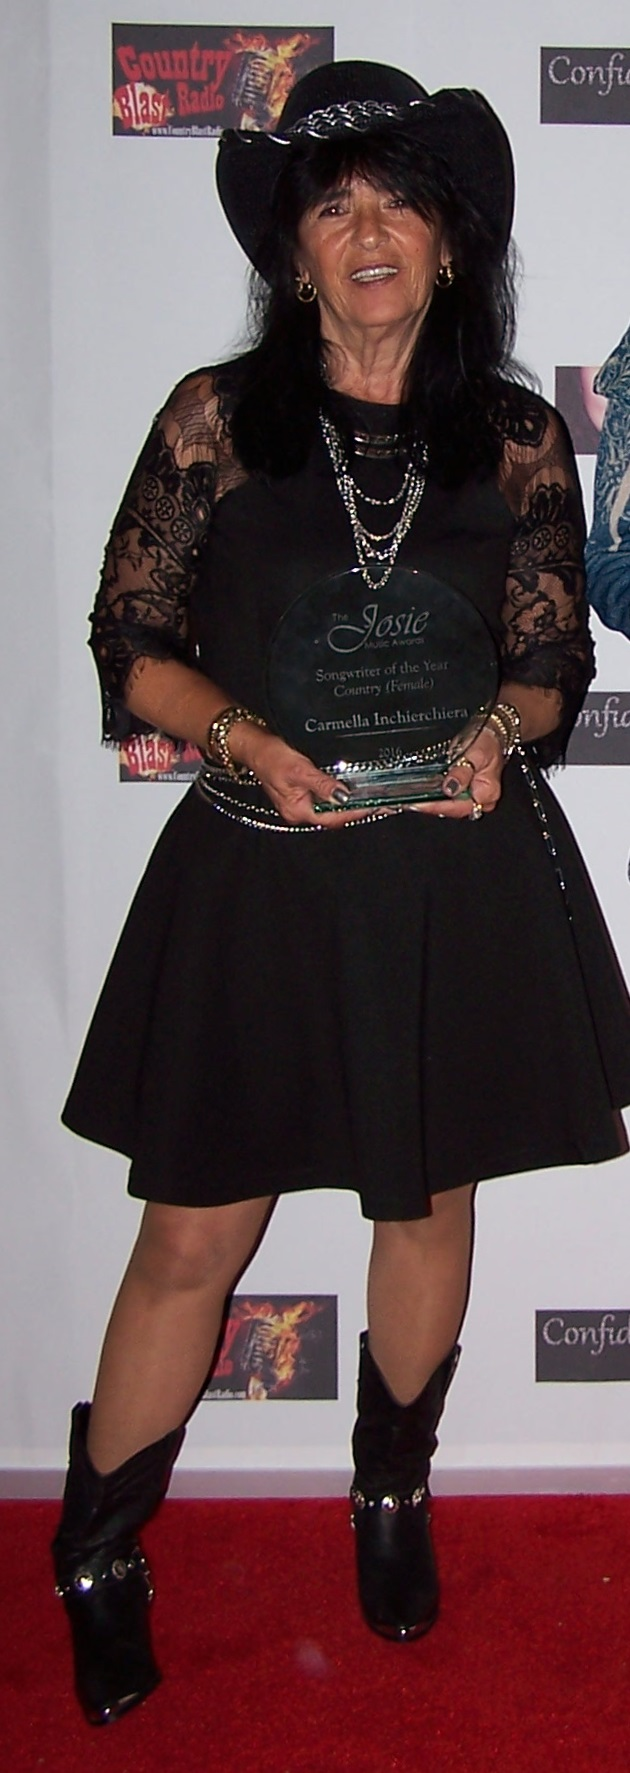 My Country Female Songwriter of the Year Award